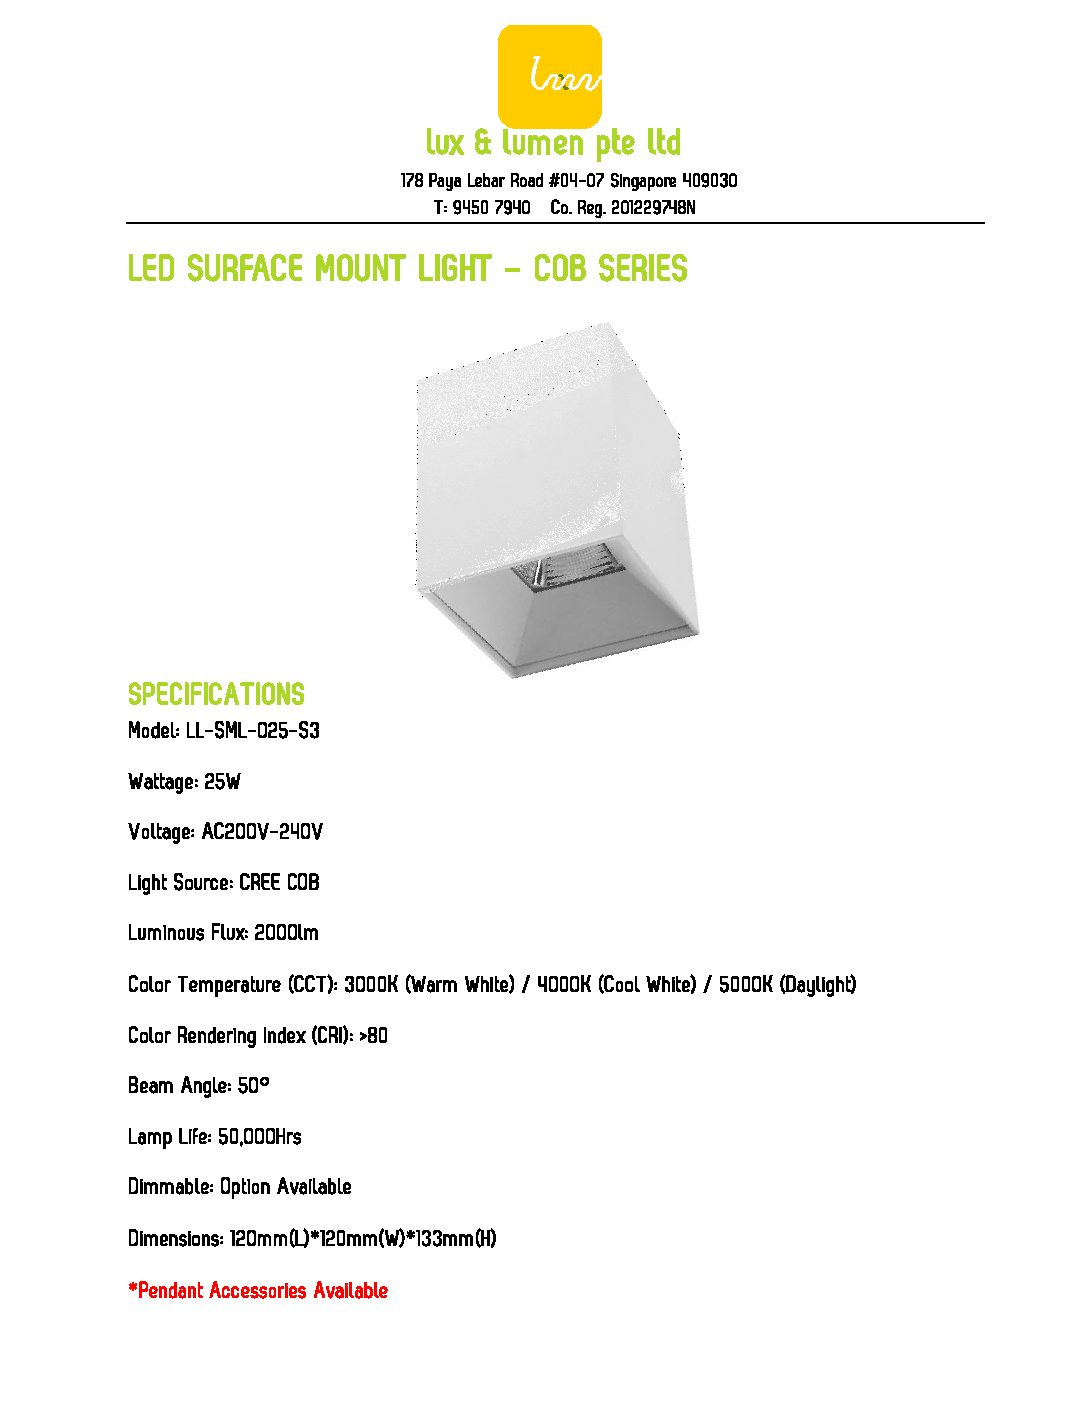 LED Surface Mount Light COB Series S025